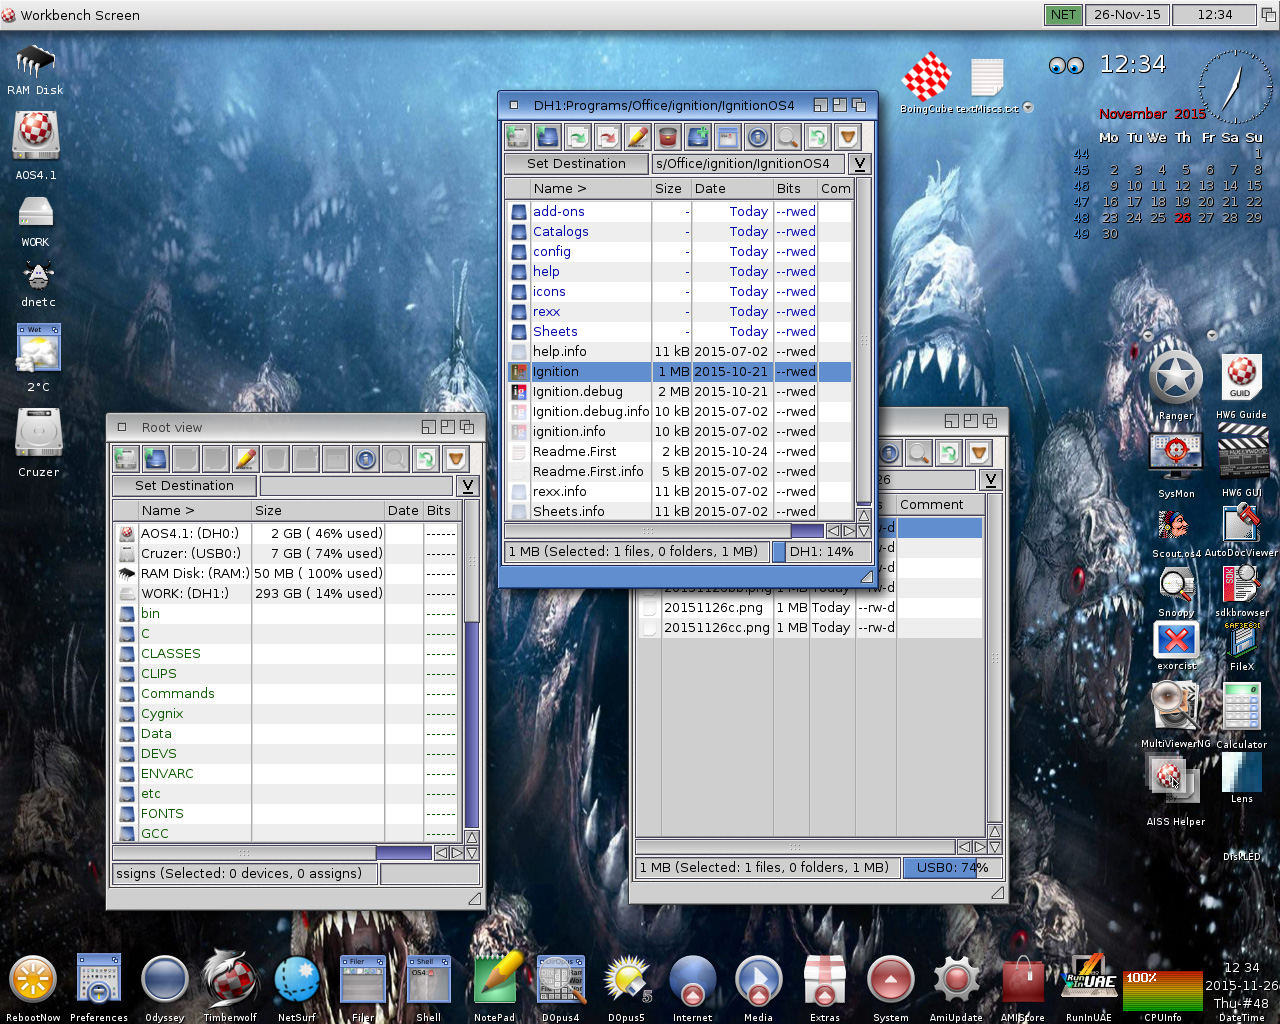 Filer windows-AmigaOS 4.1 FE-Update 8-Workbench-AOS4.1u8